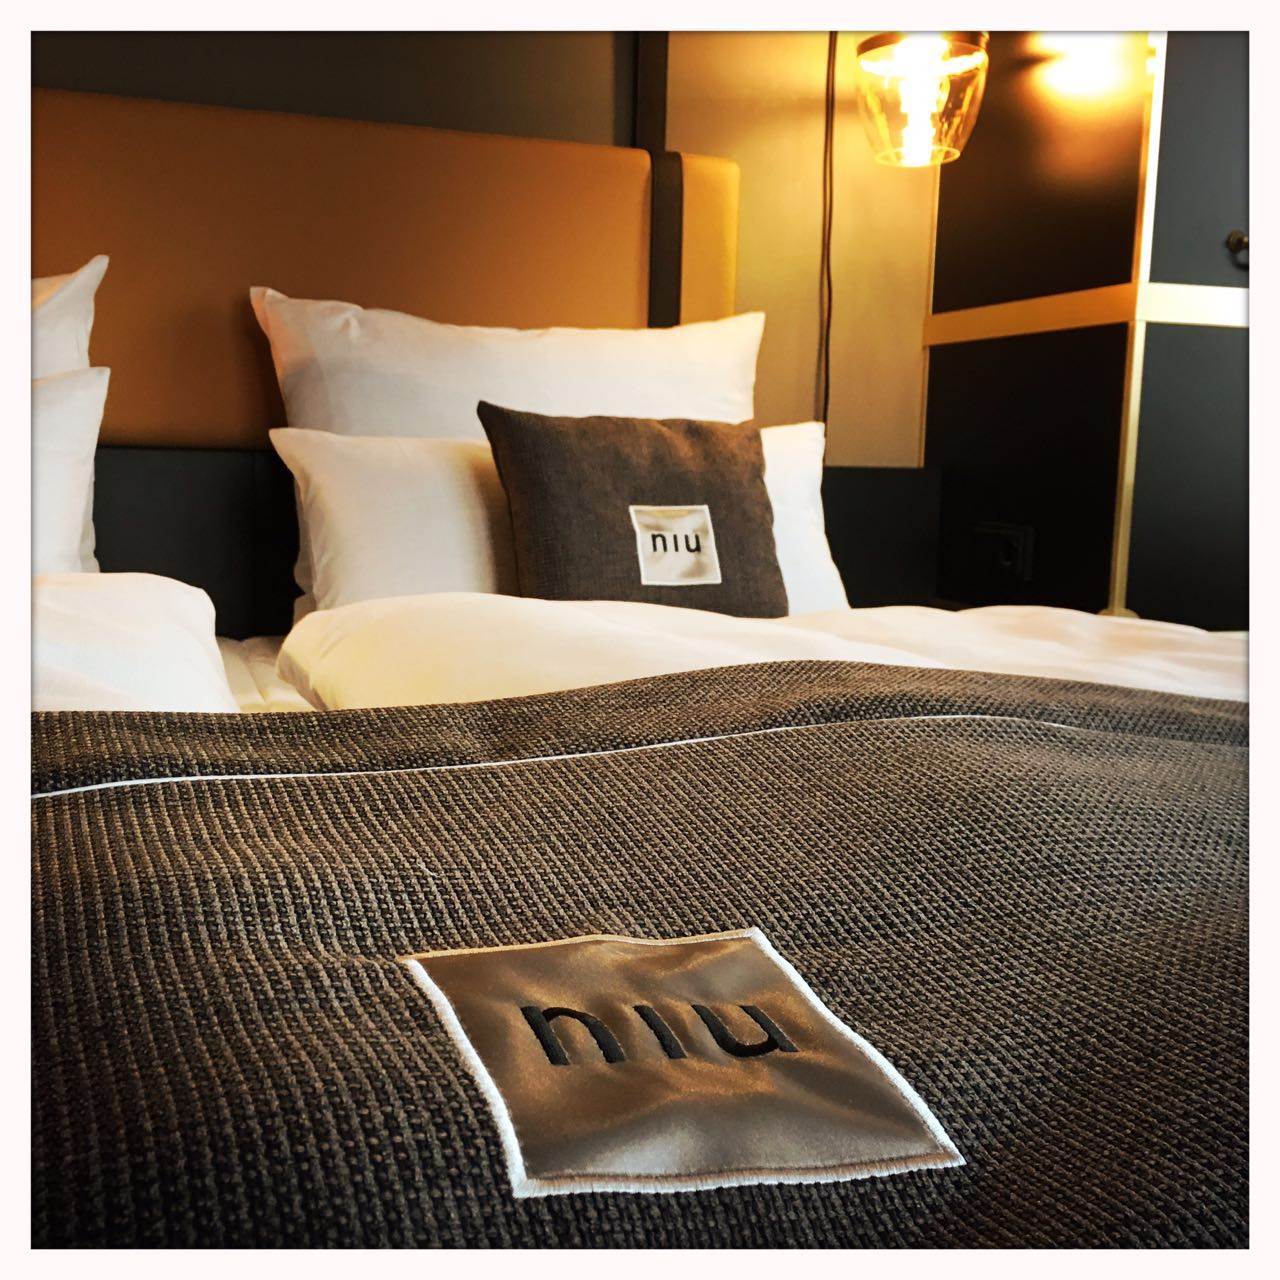 Why Germany needs new hotels – Digitisation gives new hotel concepts such as niu enormous chances of success